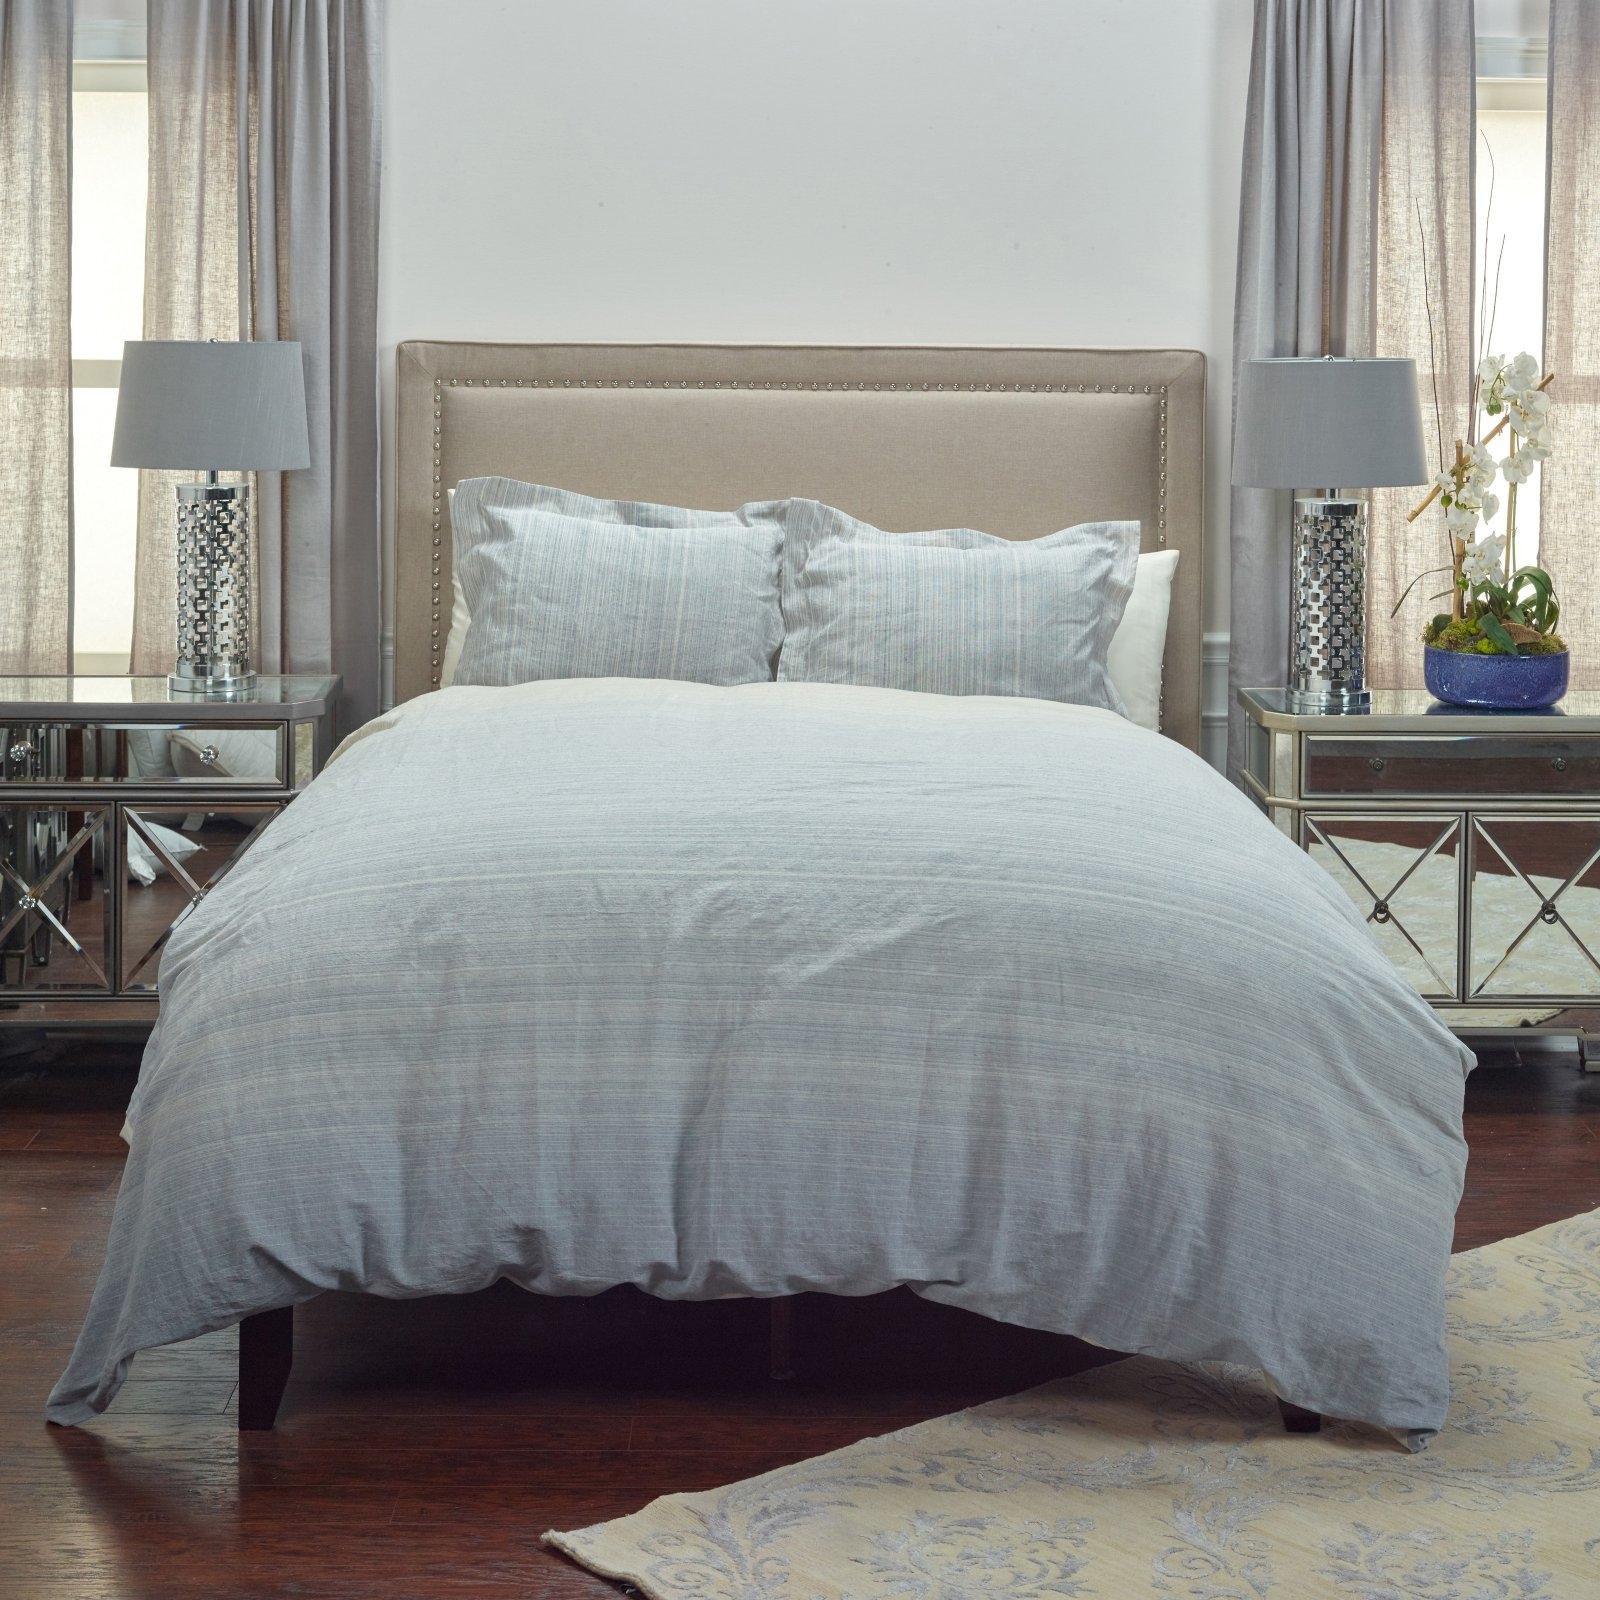 Rizzy Home BT4053 Queen Linen Duvet